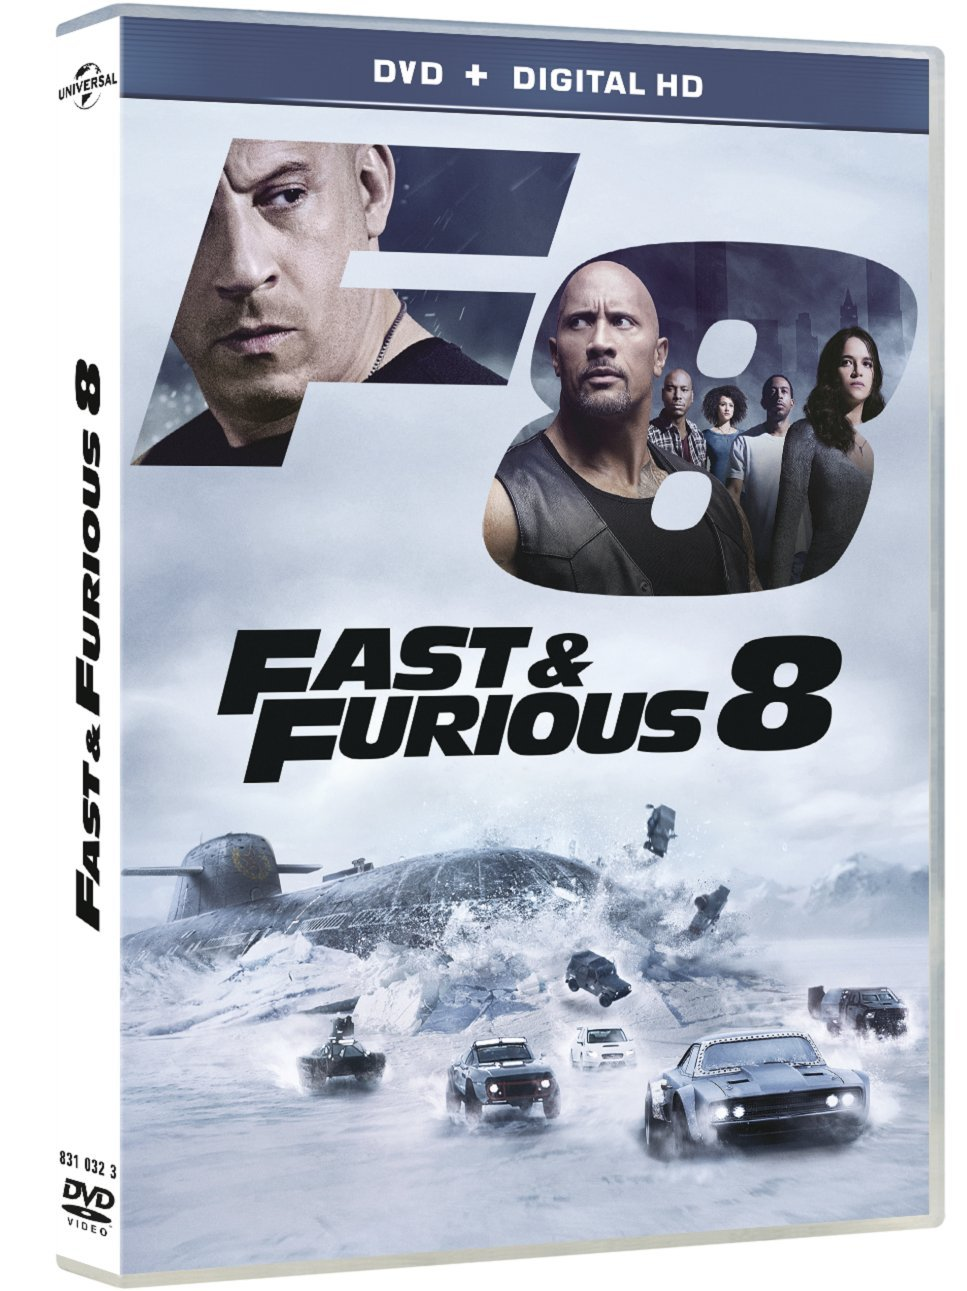 The Fate Of The Furious 2017 PAL MULTi DVDR-STR4NGE